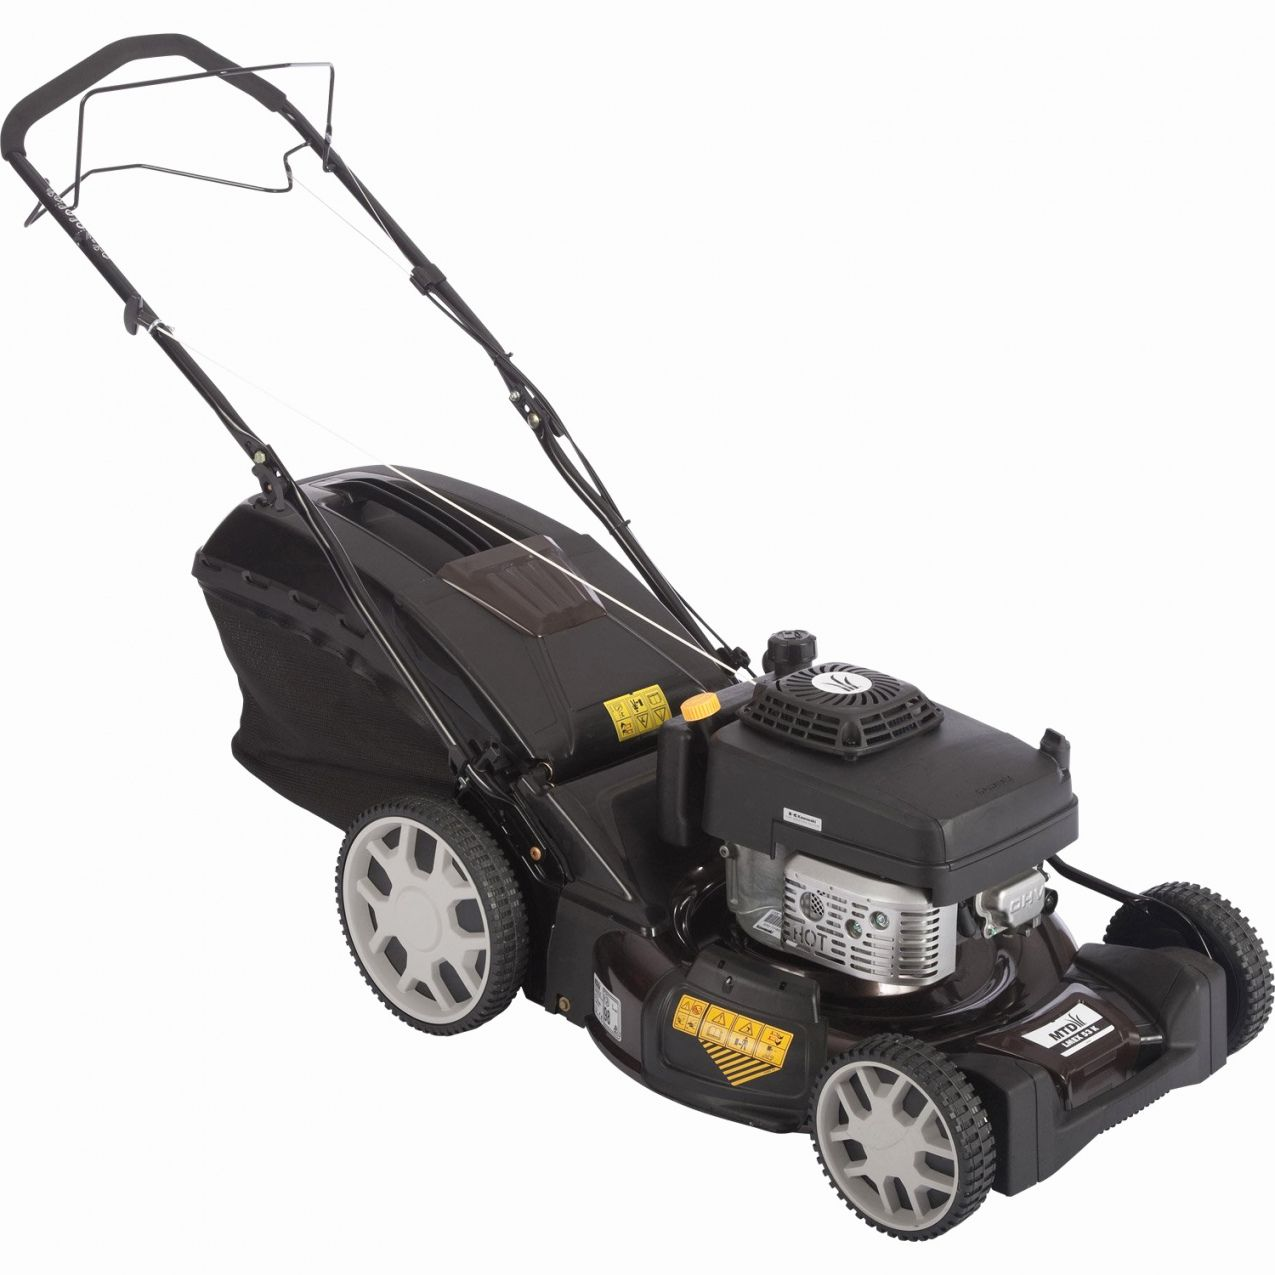 201 Tondeuse A Gazon Leroy Merlin 2020 Outdoor Power Equipment Push Lawnmower Lawn Mower